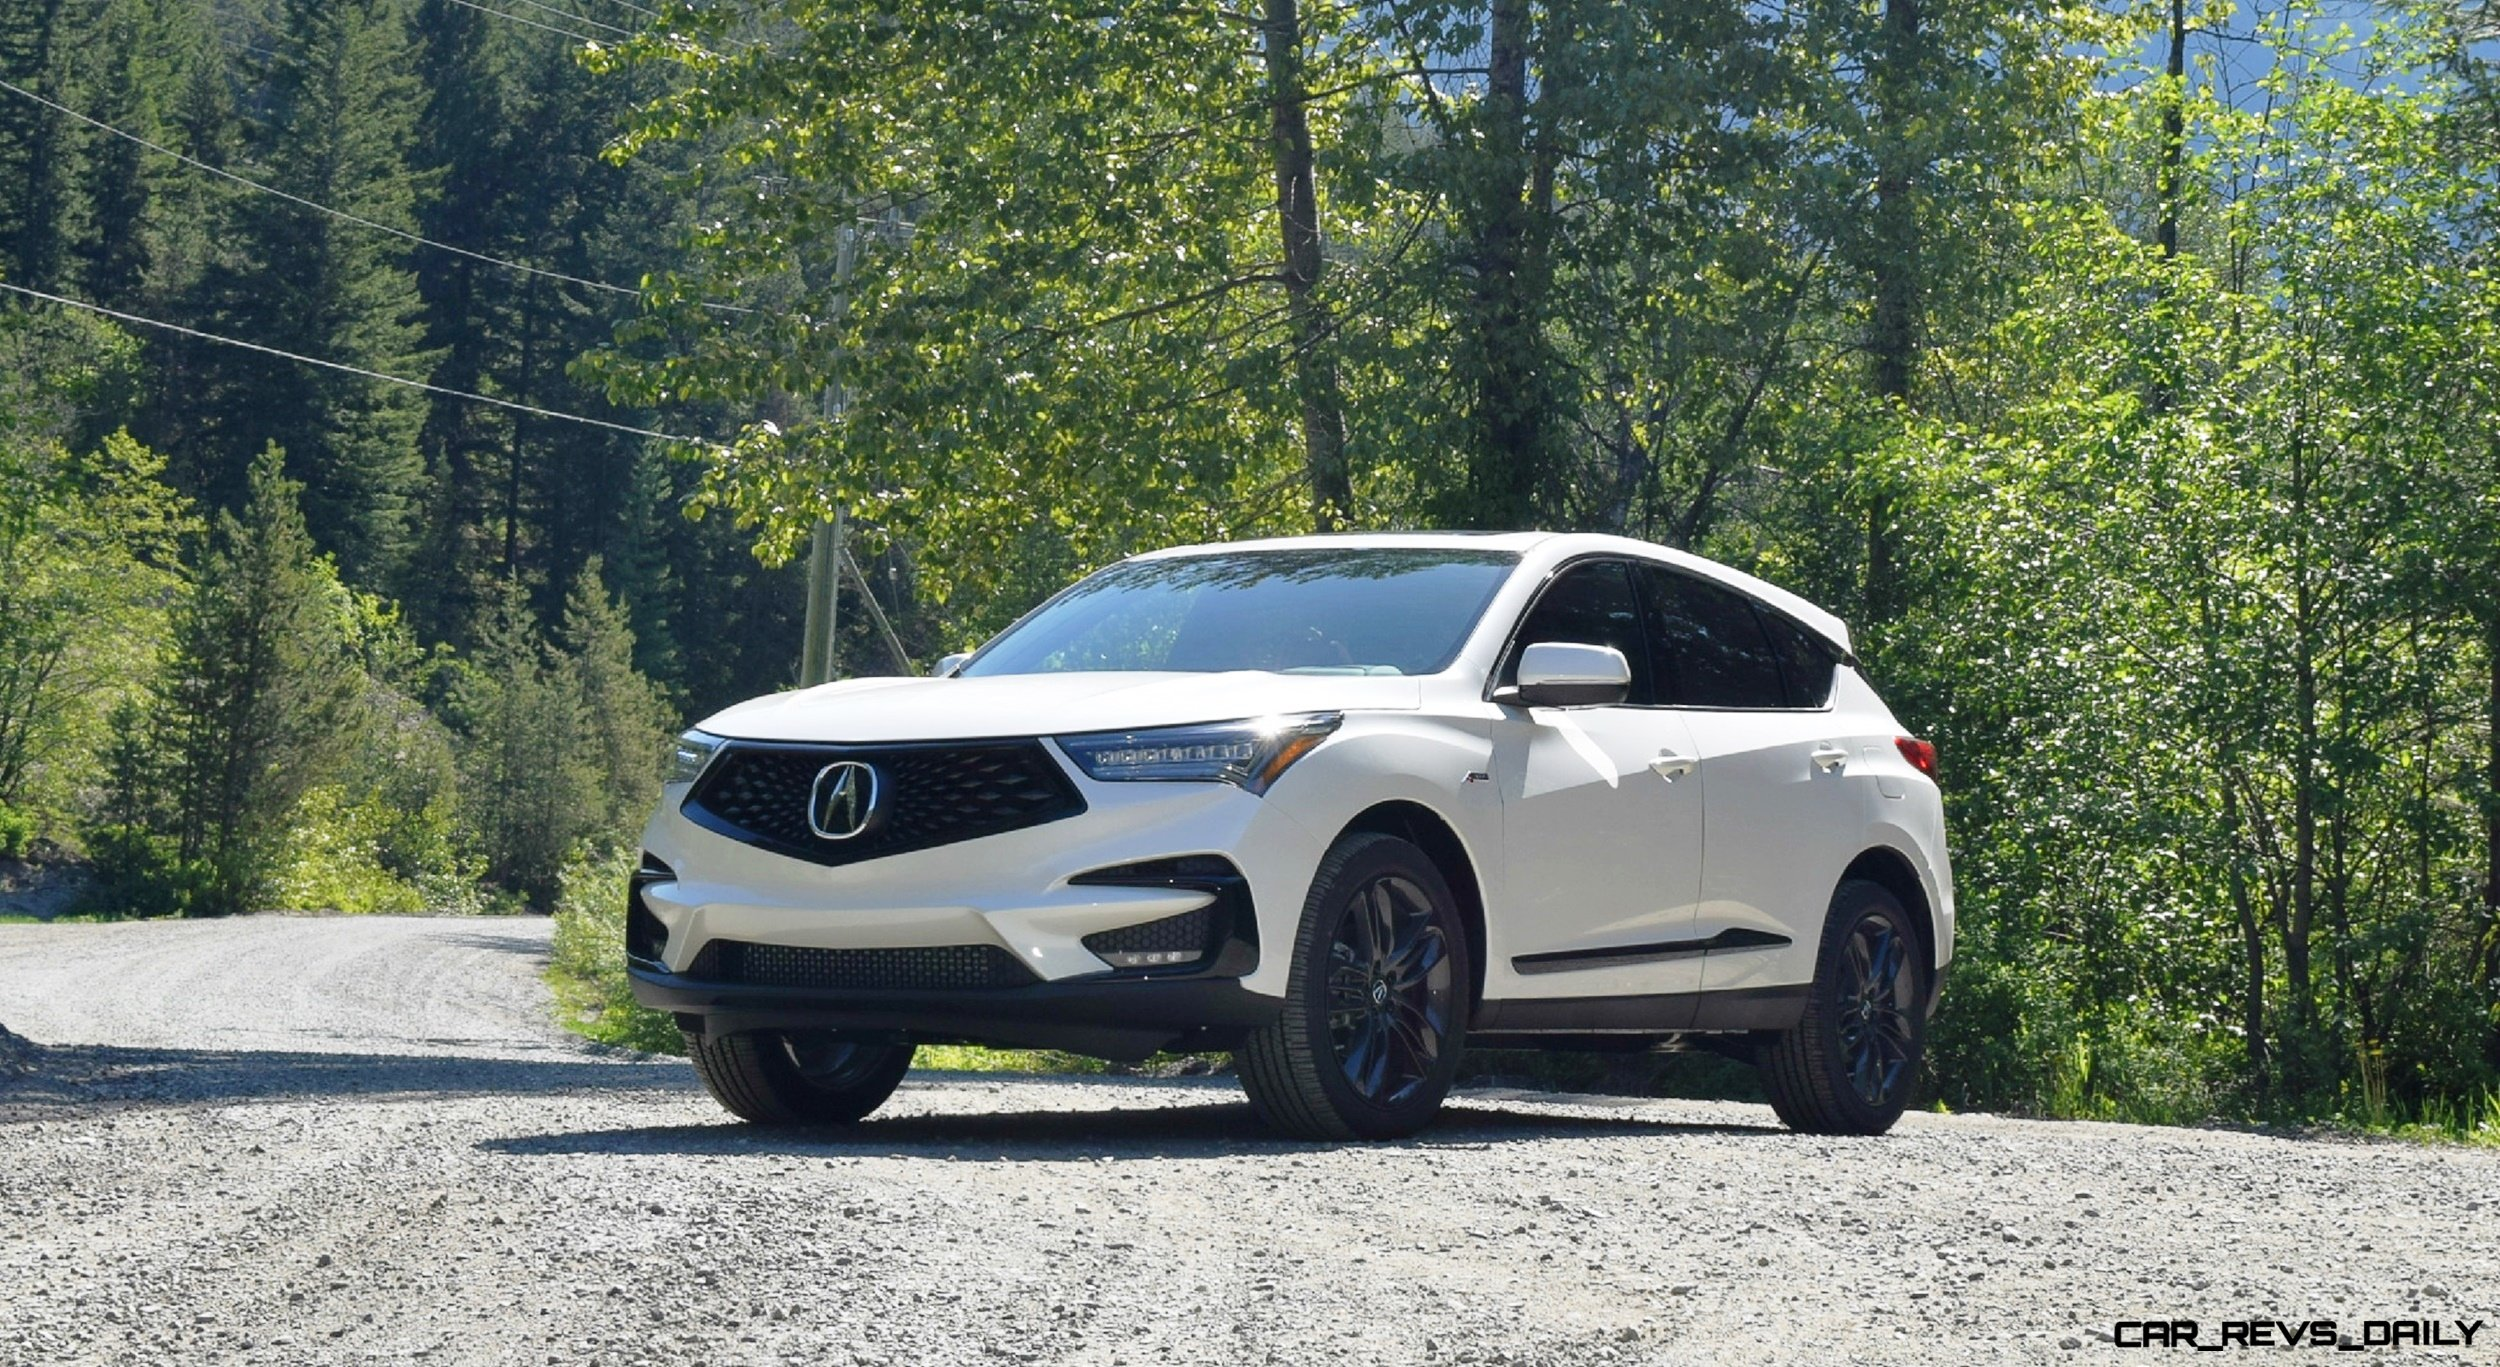 2019 Acura RDX A-Spec – First Drive Review – By Josh Seaman